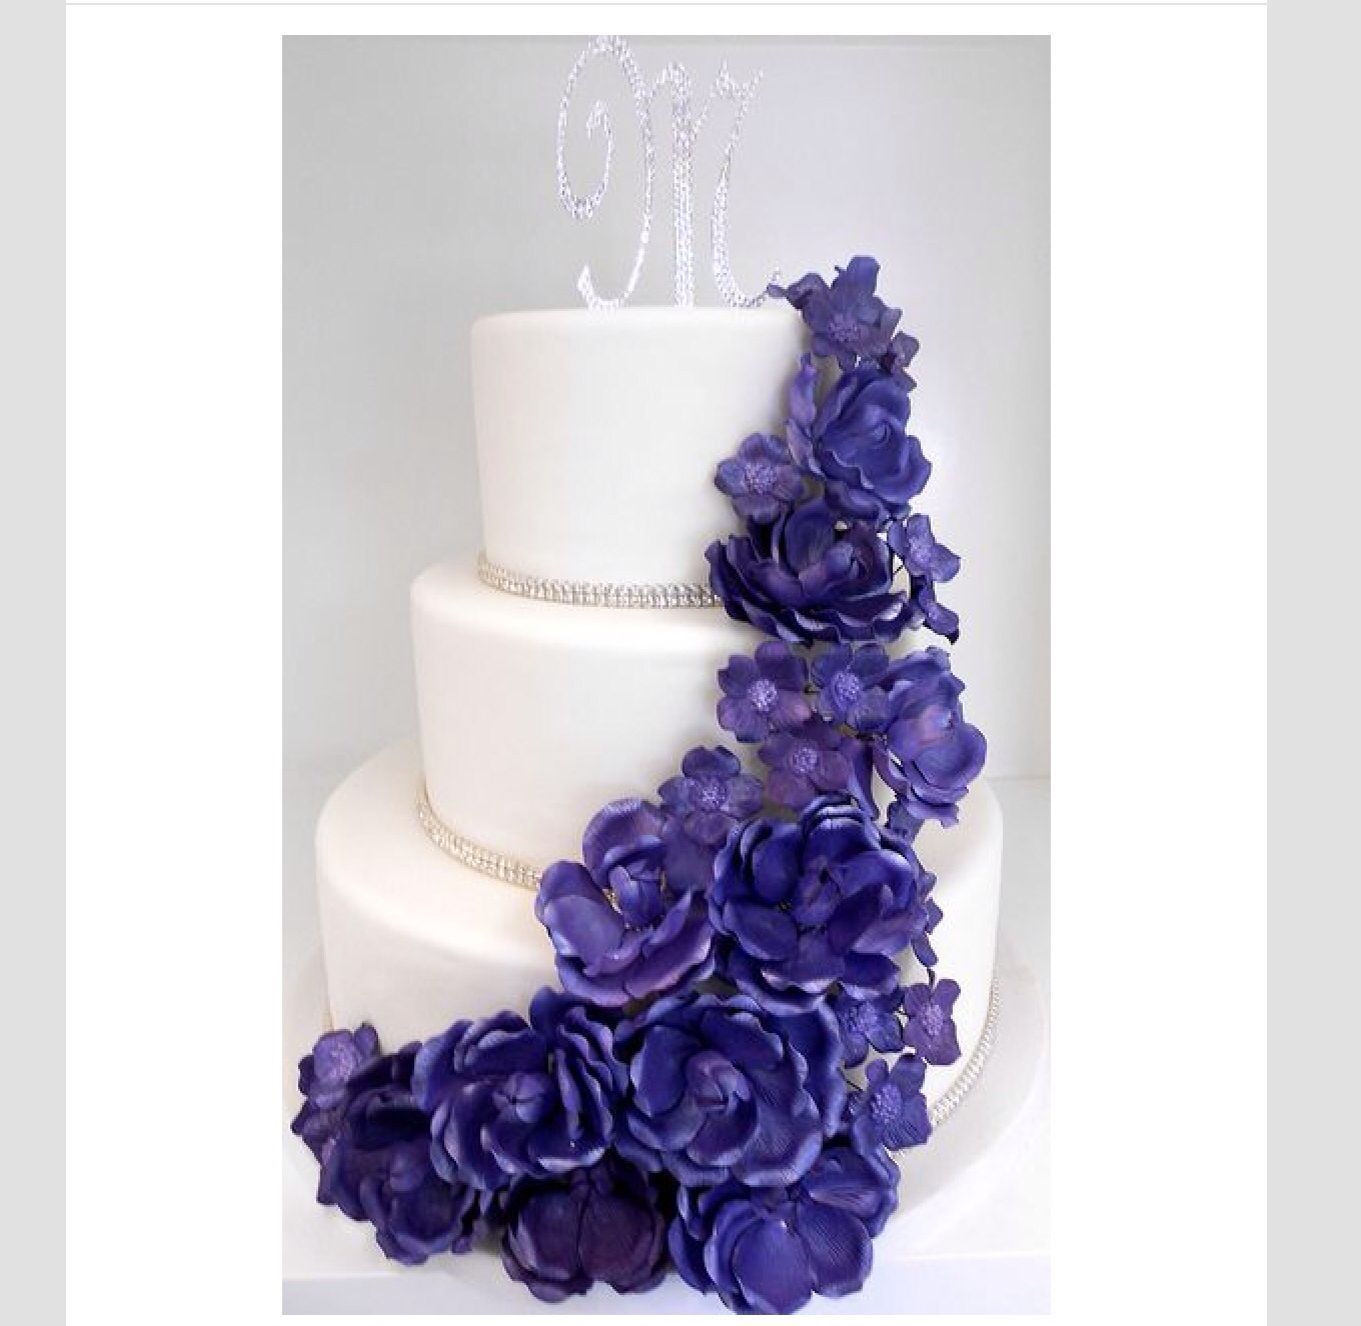 Bling and purple flowers   More wedding cakes   Pinterest   Cake ...